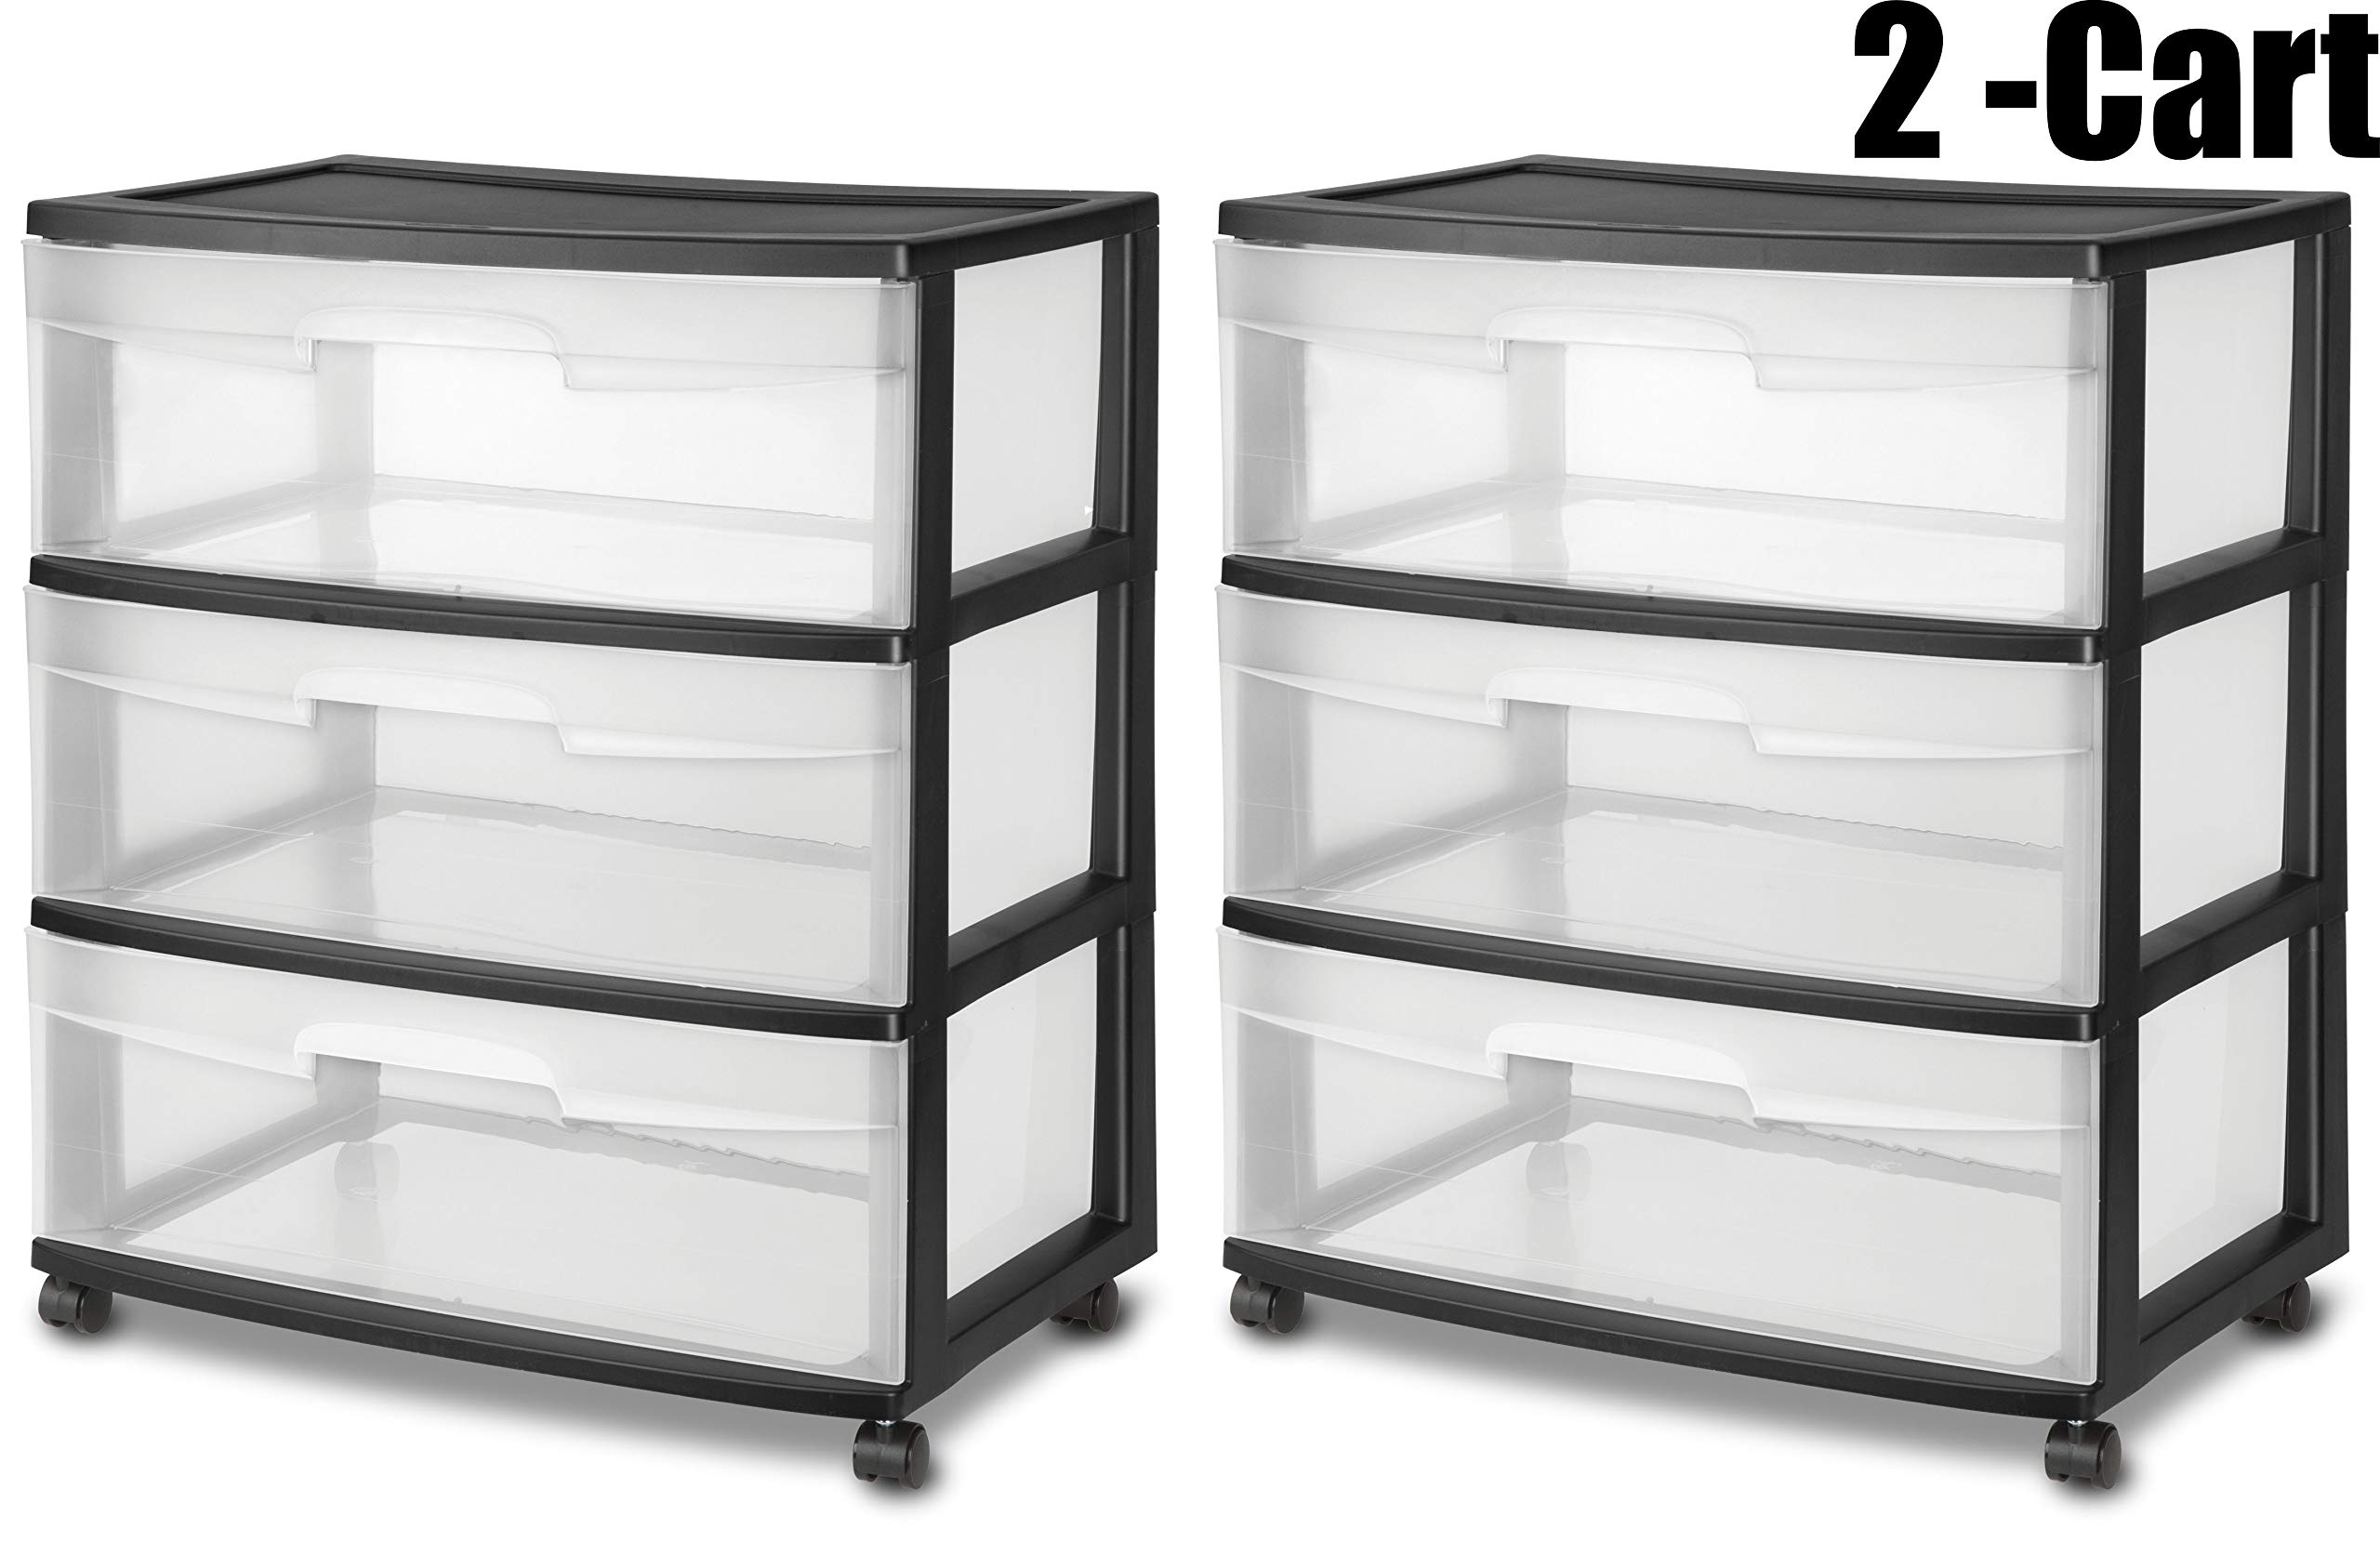 STERILITE Wide 3 Drawer Cart, Black Frame with Clear Drawers and Black Casters, 2-Cart